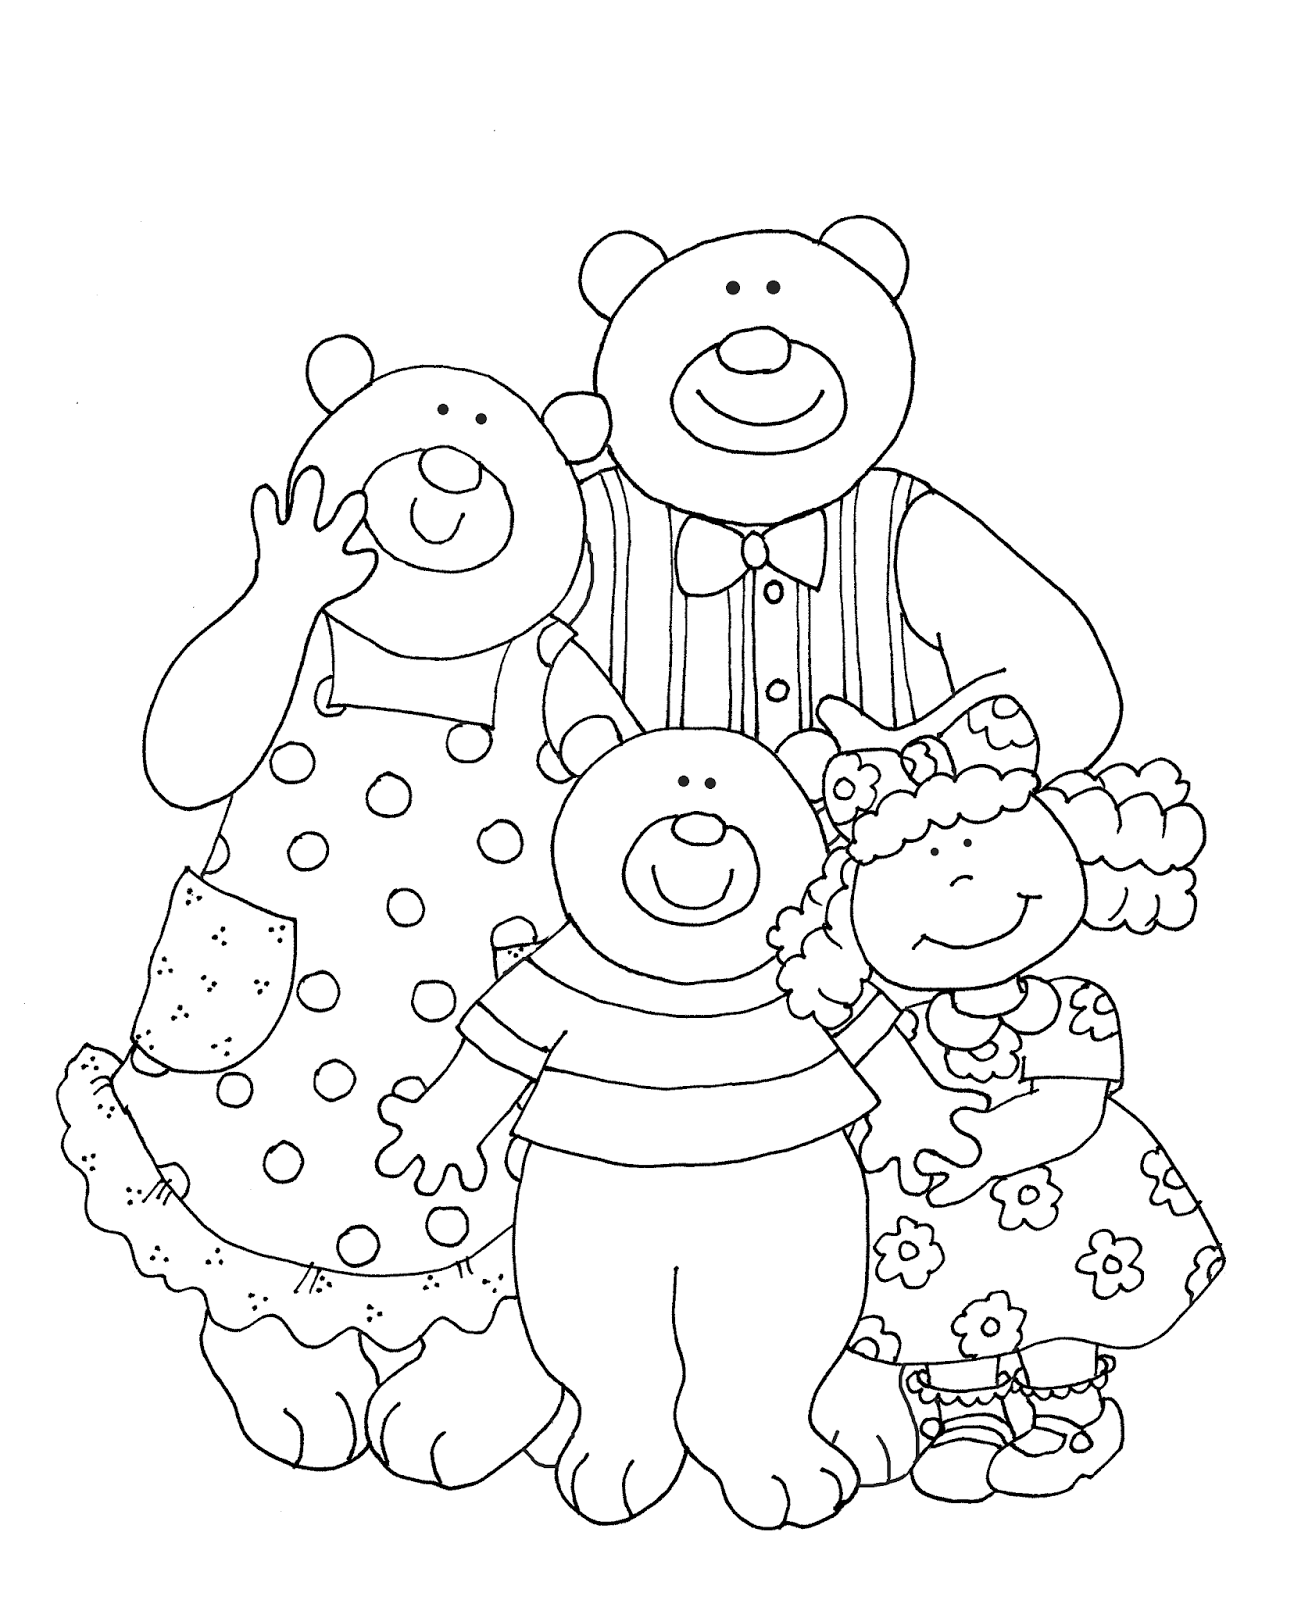 Three Bears Drawing at GetDrawings.com | Free for personal use Three ...